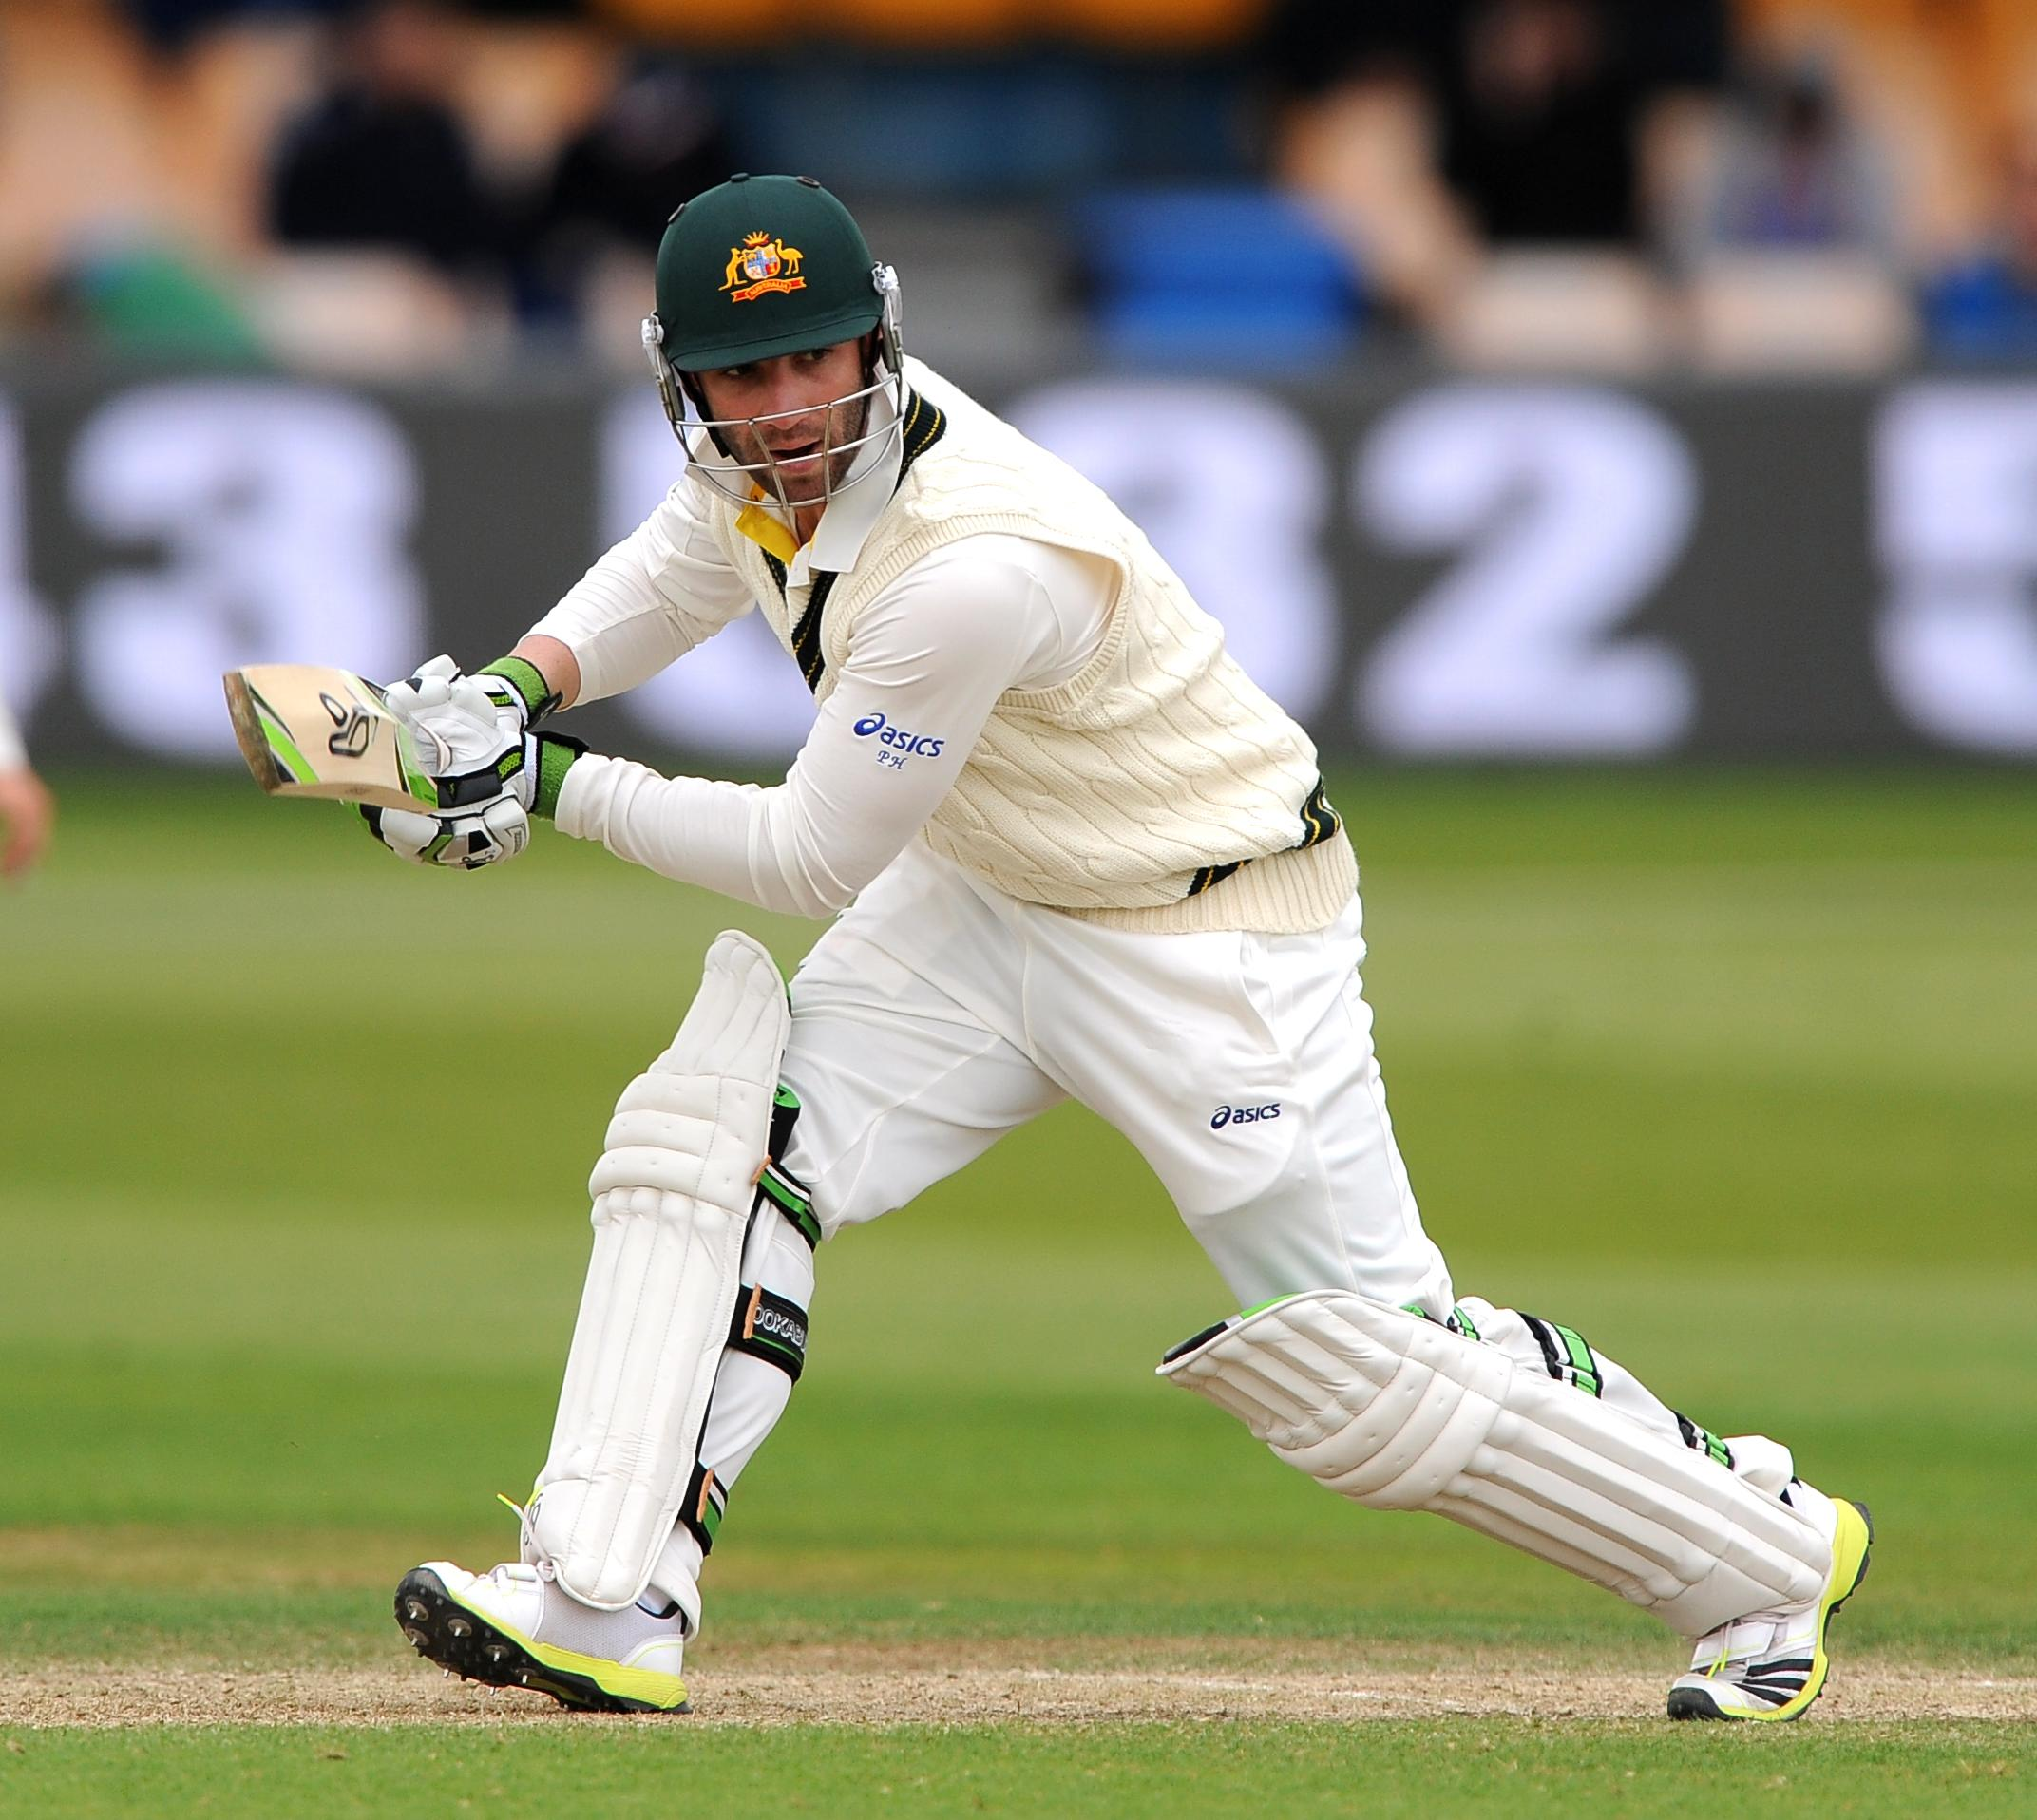 Phillip Hughes died aged 25 after being hit on the side of the head by a bouncer